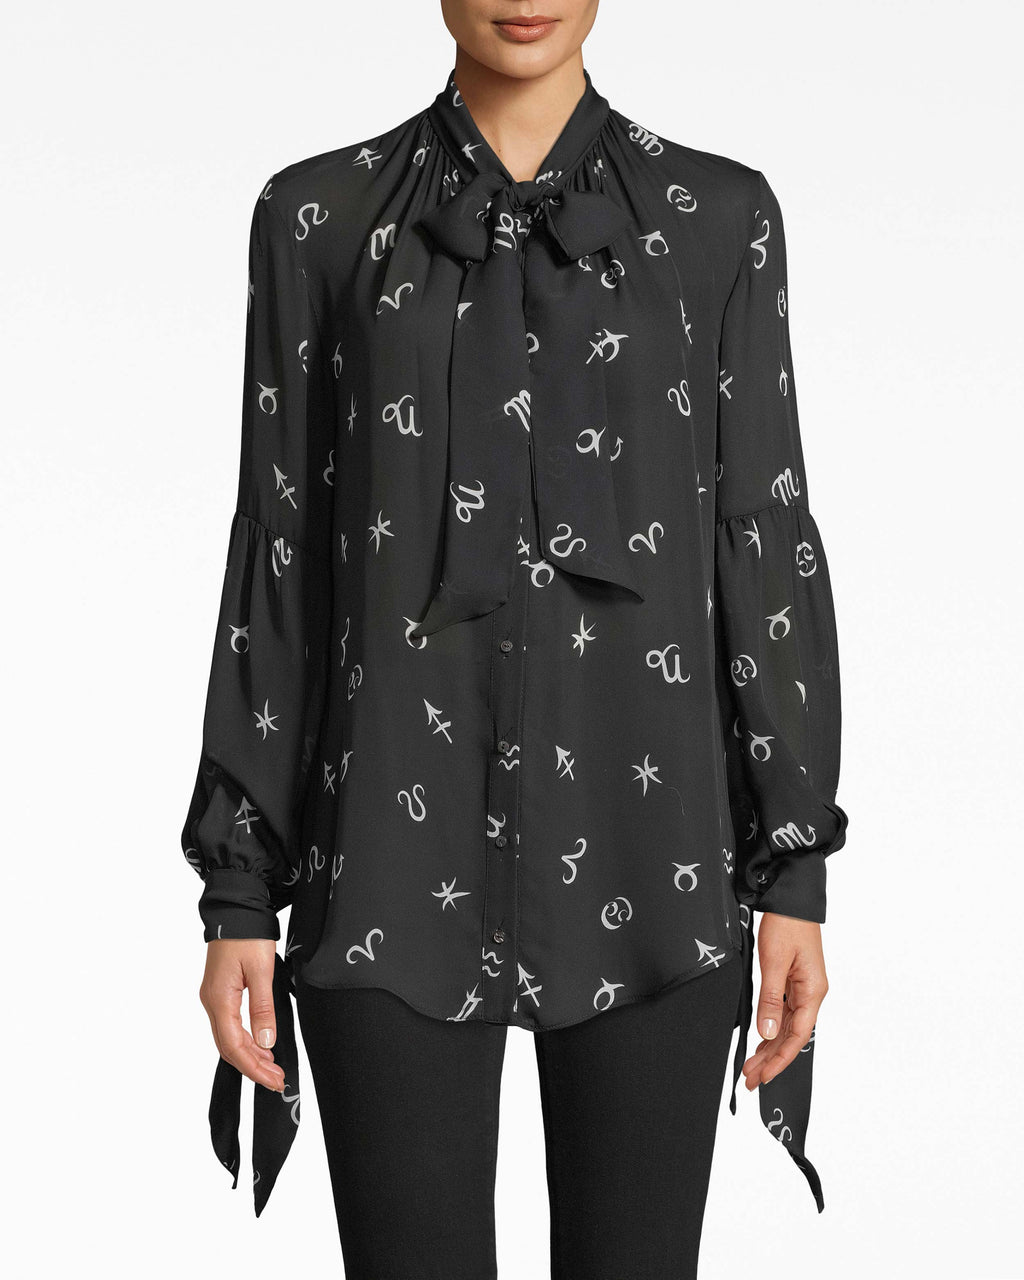 BD10287 - HOROSCOPE SILK STOCK TIE LONG SLEEVE BLOUSE - tops - blouses - Your horoscope says: this blouse. Not only does it features an astrolgical print, but it has bows on the neck and sleeves.